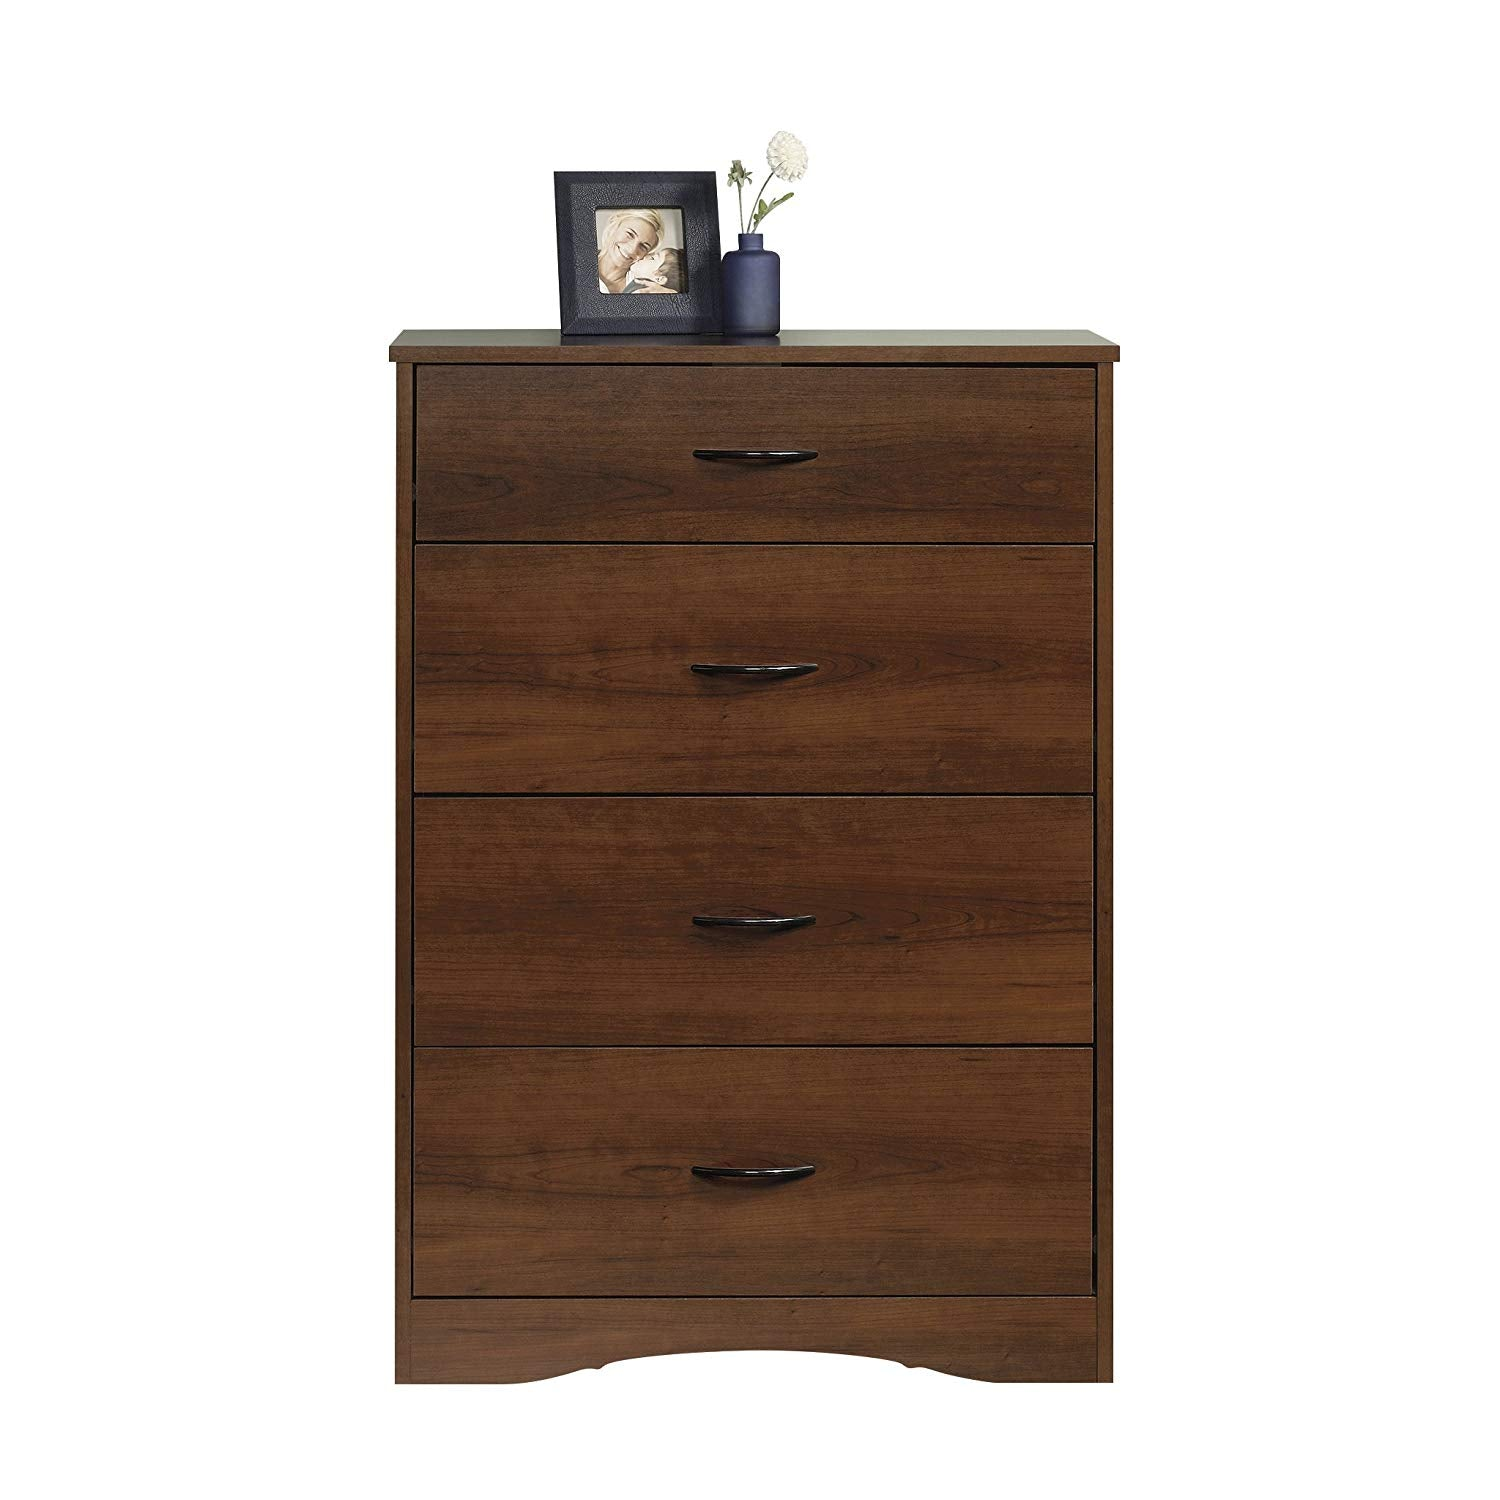 4 Drawer Chest, L: 27.56